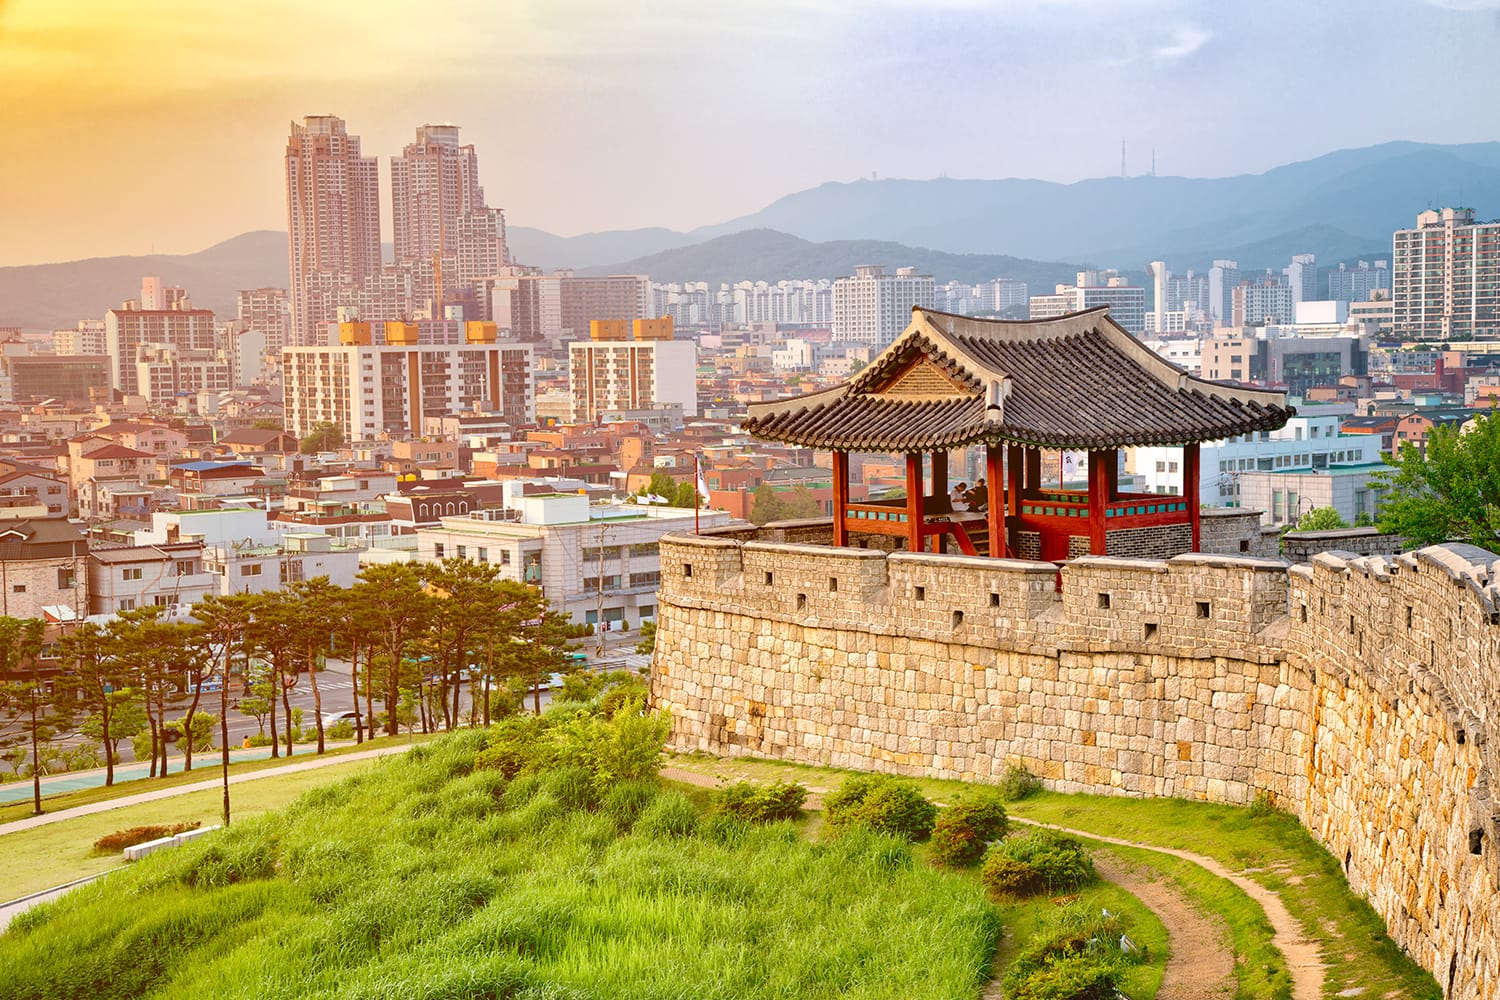 Hwaseong is a fortress of the Joseon Dynasty that surrounds the centre of Suwon City, South Korea